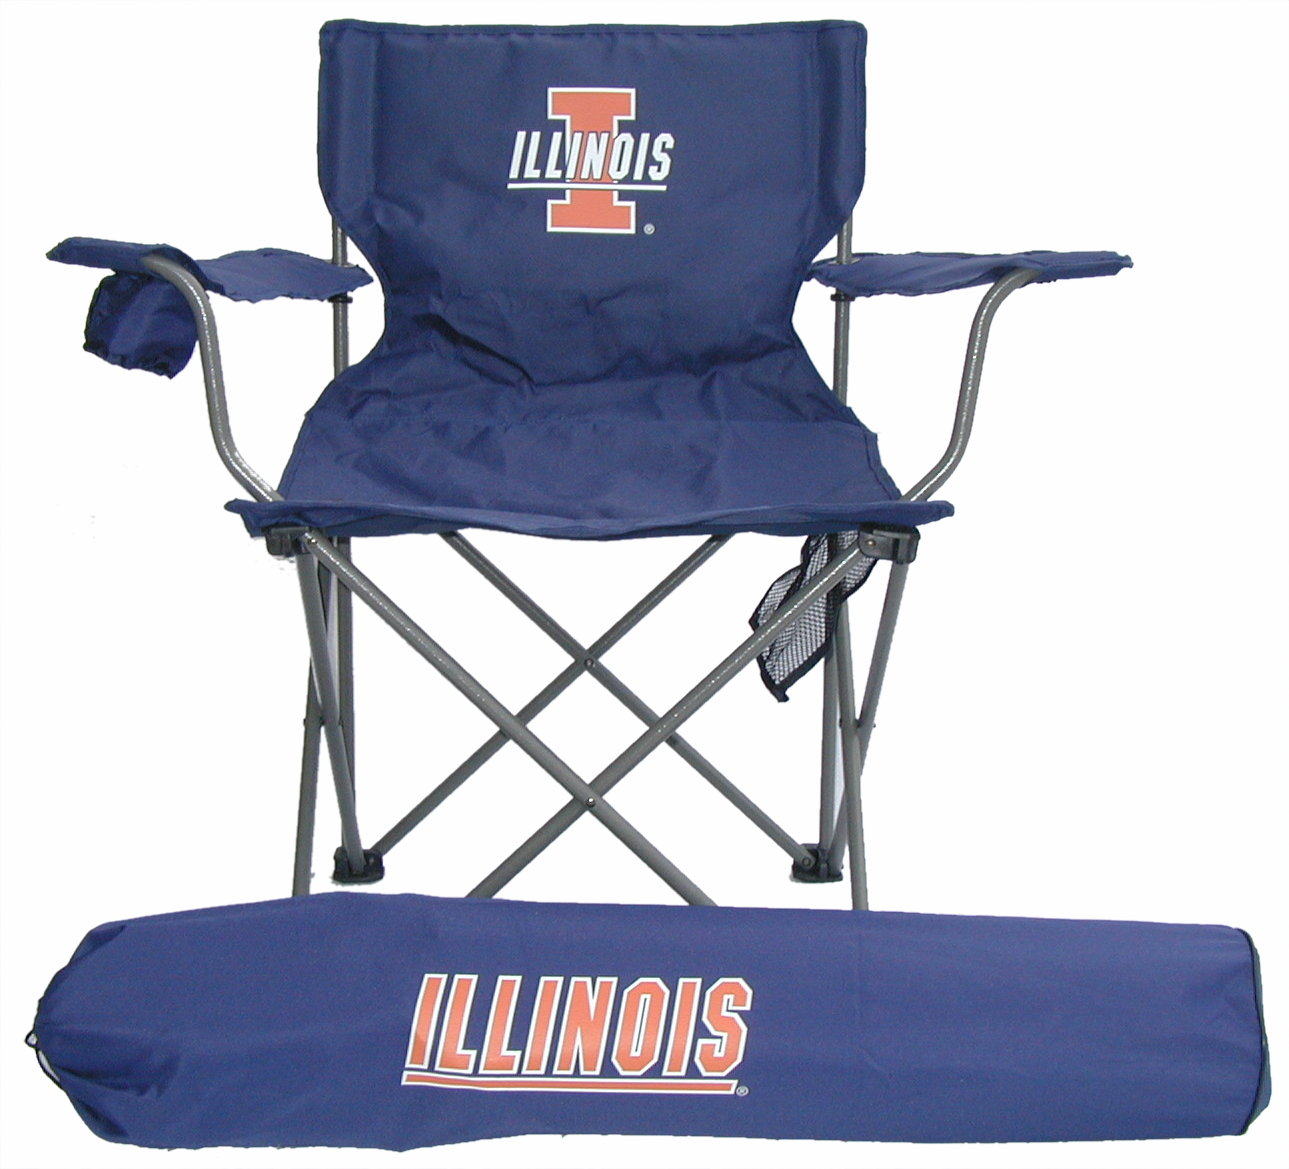 Tailgate Chairs Illinois Fighting Illini Ultimate Tailgate Chair